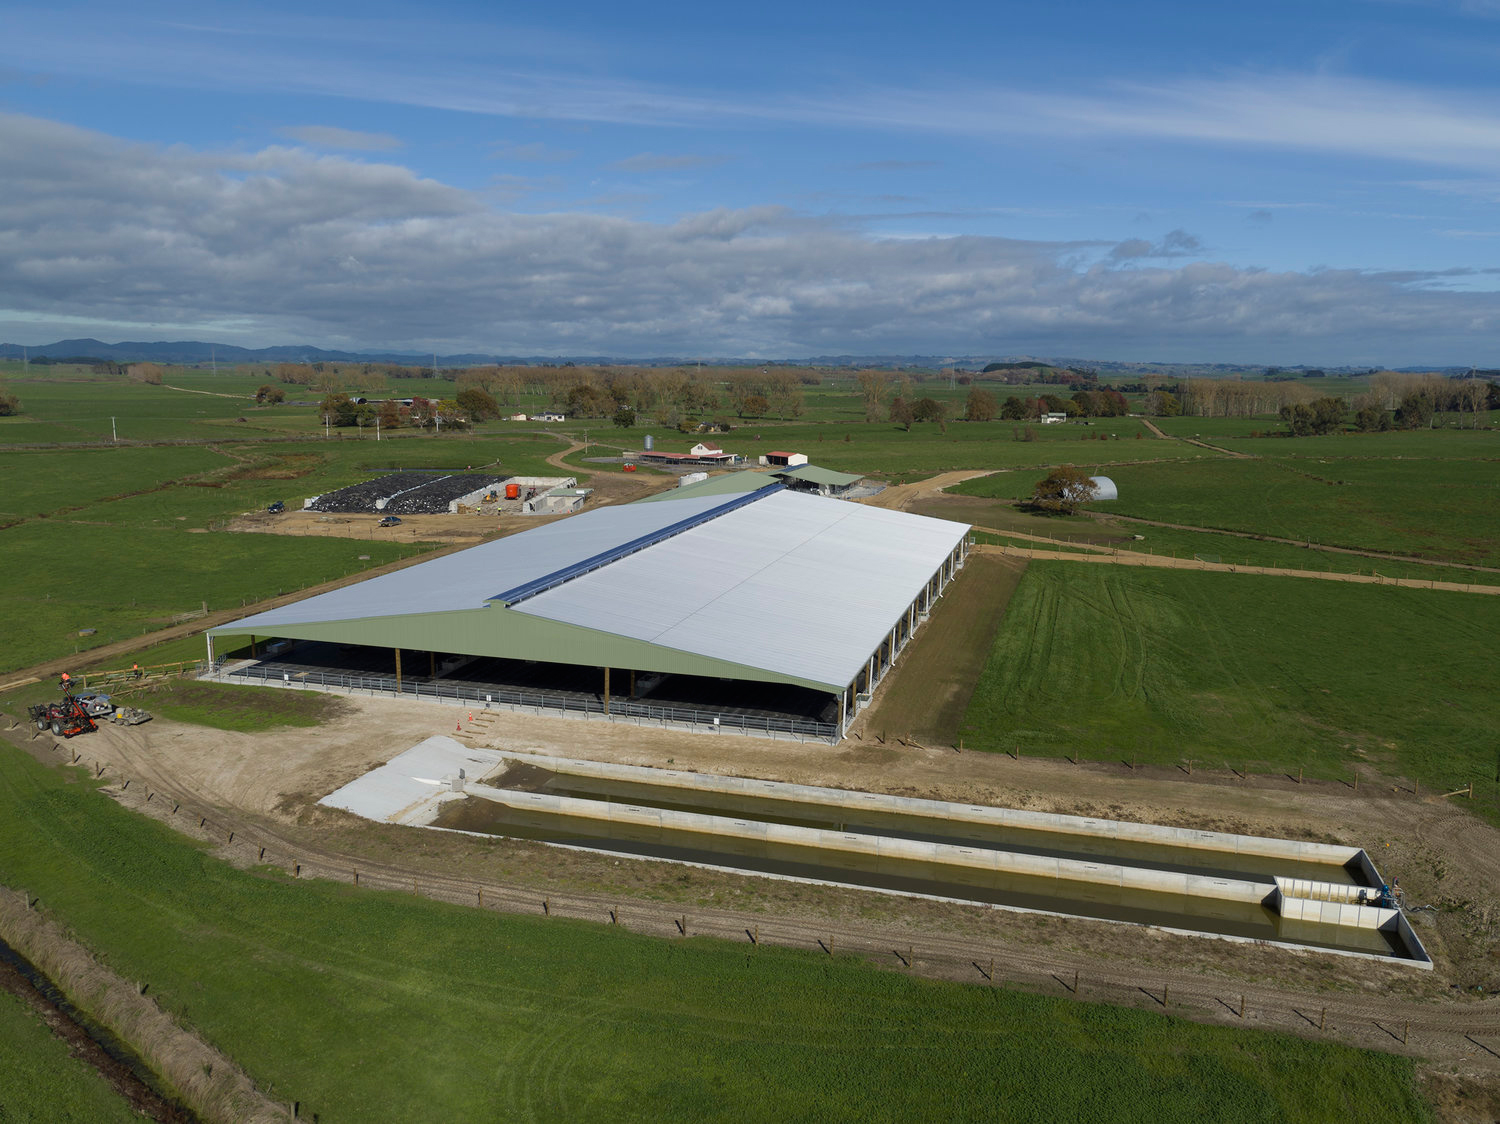 # 8 SIMPSON FARMS – ALL UNDER ONE ROOF